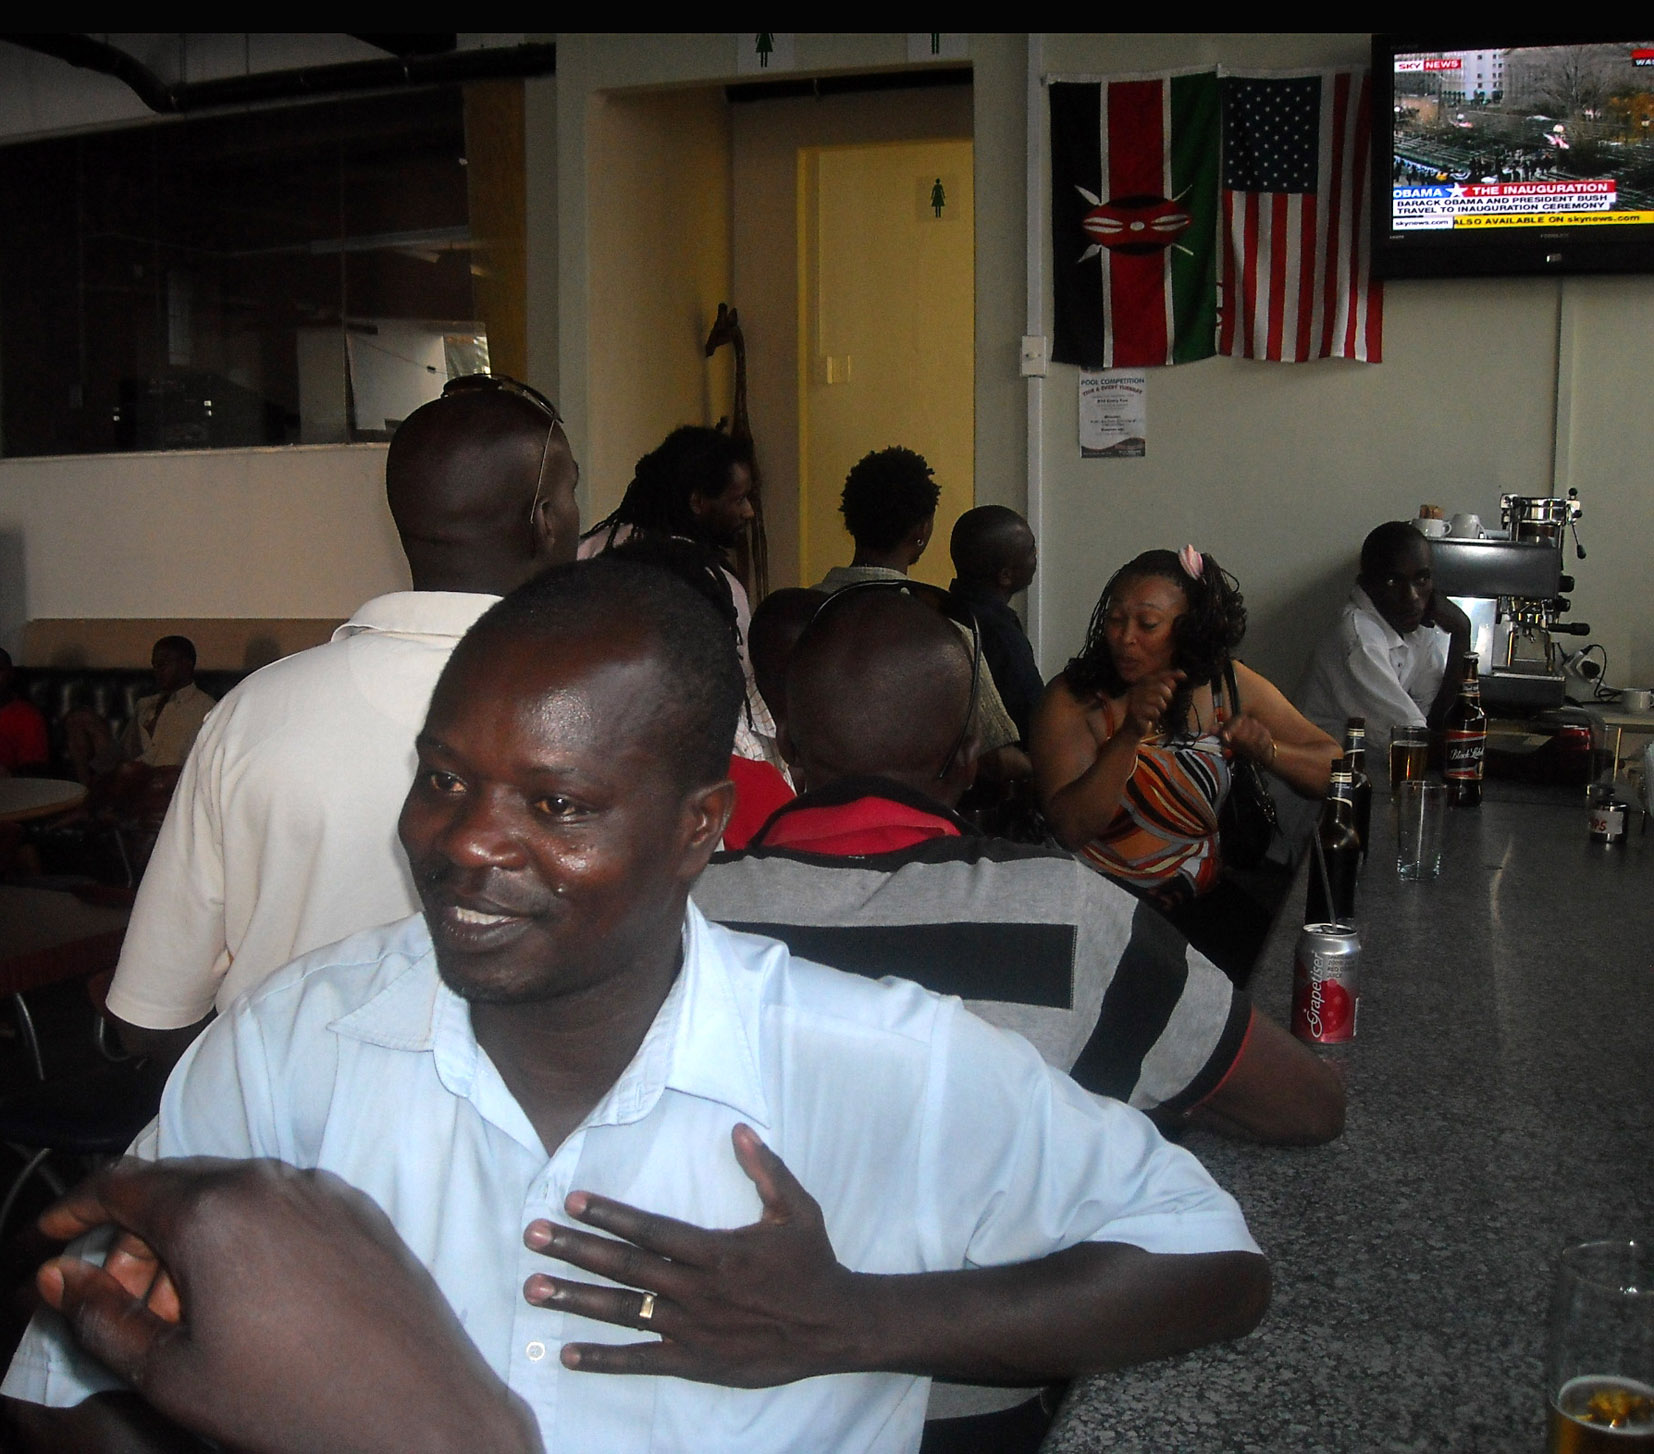 Kenyans living in Cape Town celebrated Obama's inauguration at a Kenyan-owned bar in Loop Street. Photo: Peter Luhanga/WCN